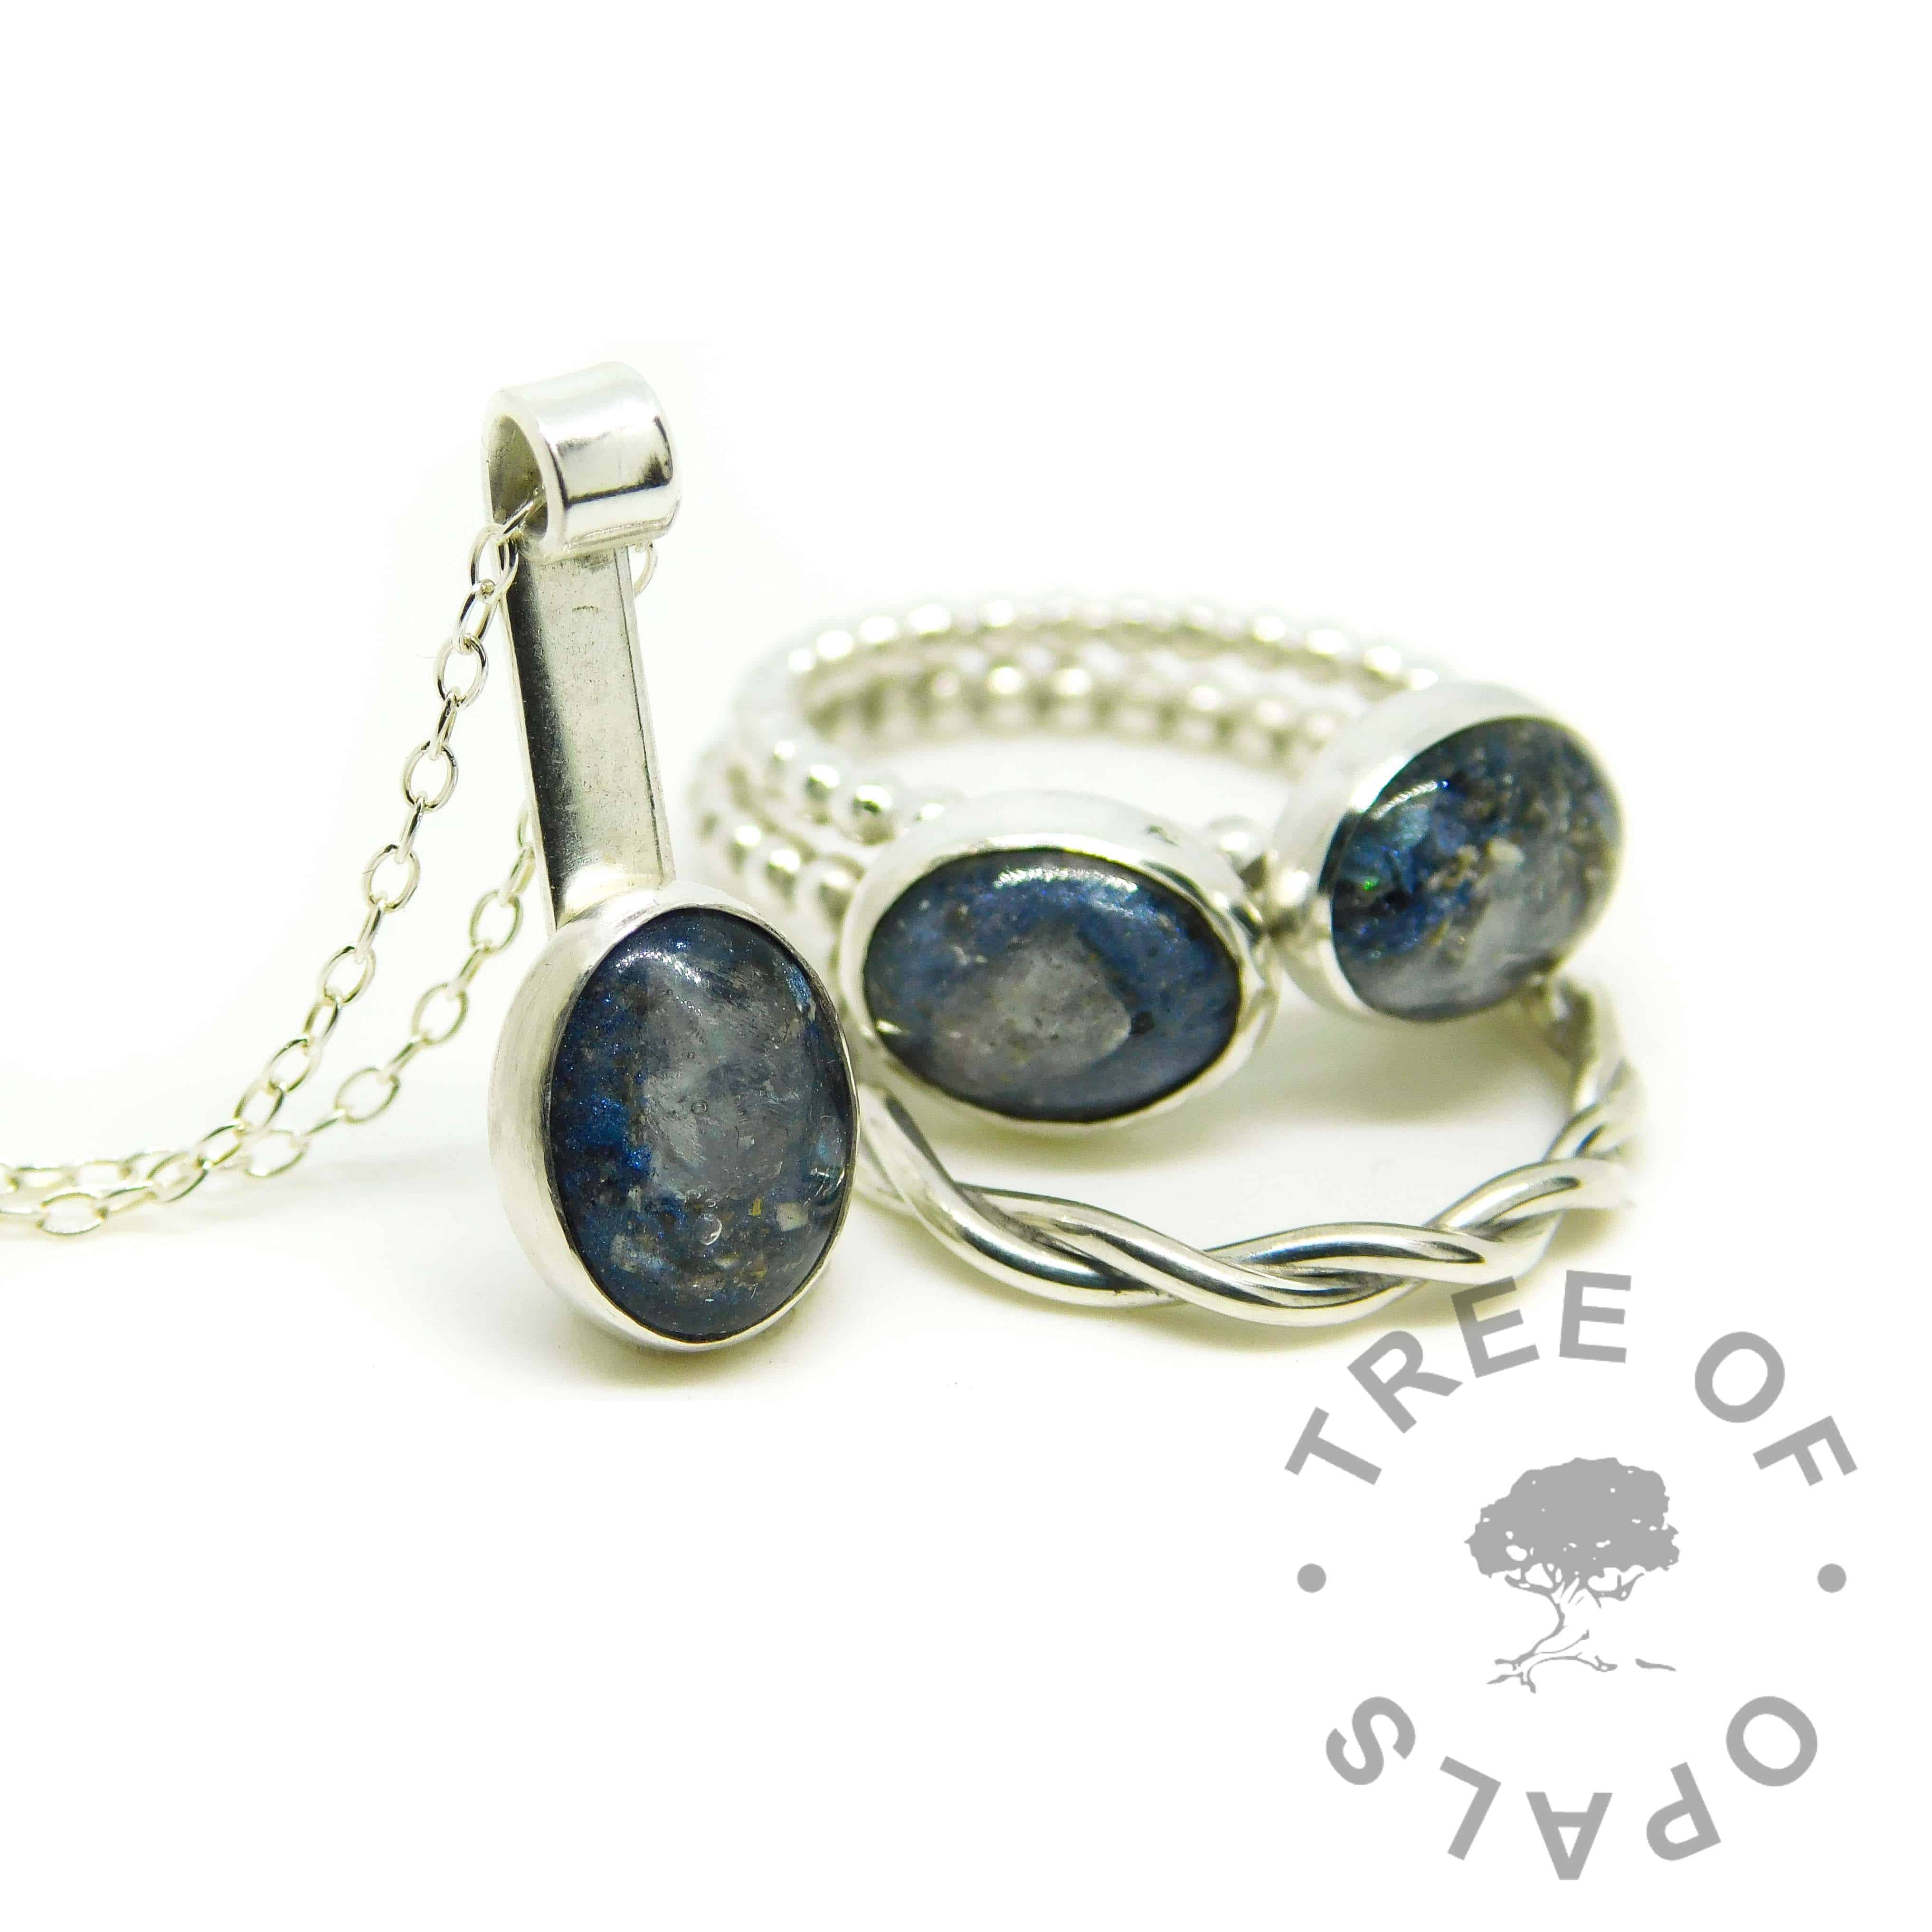 ash mystery piece with Aegean blue resin sparkle mix and moonstone June birthstone. Family order two rings, stacking ring and mystery piece